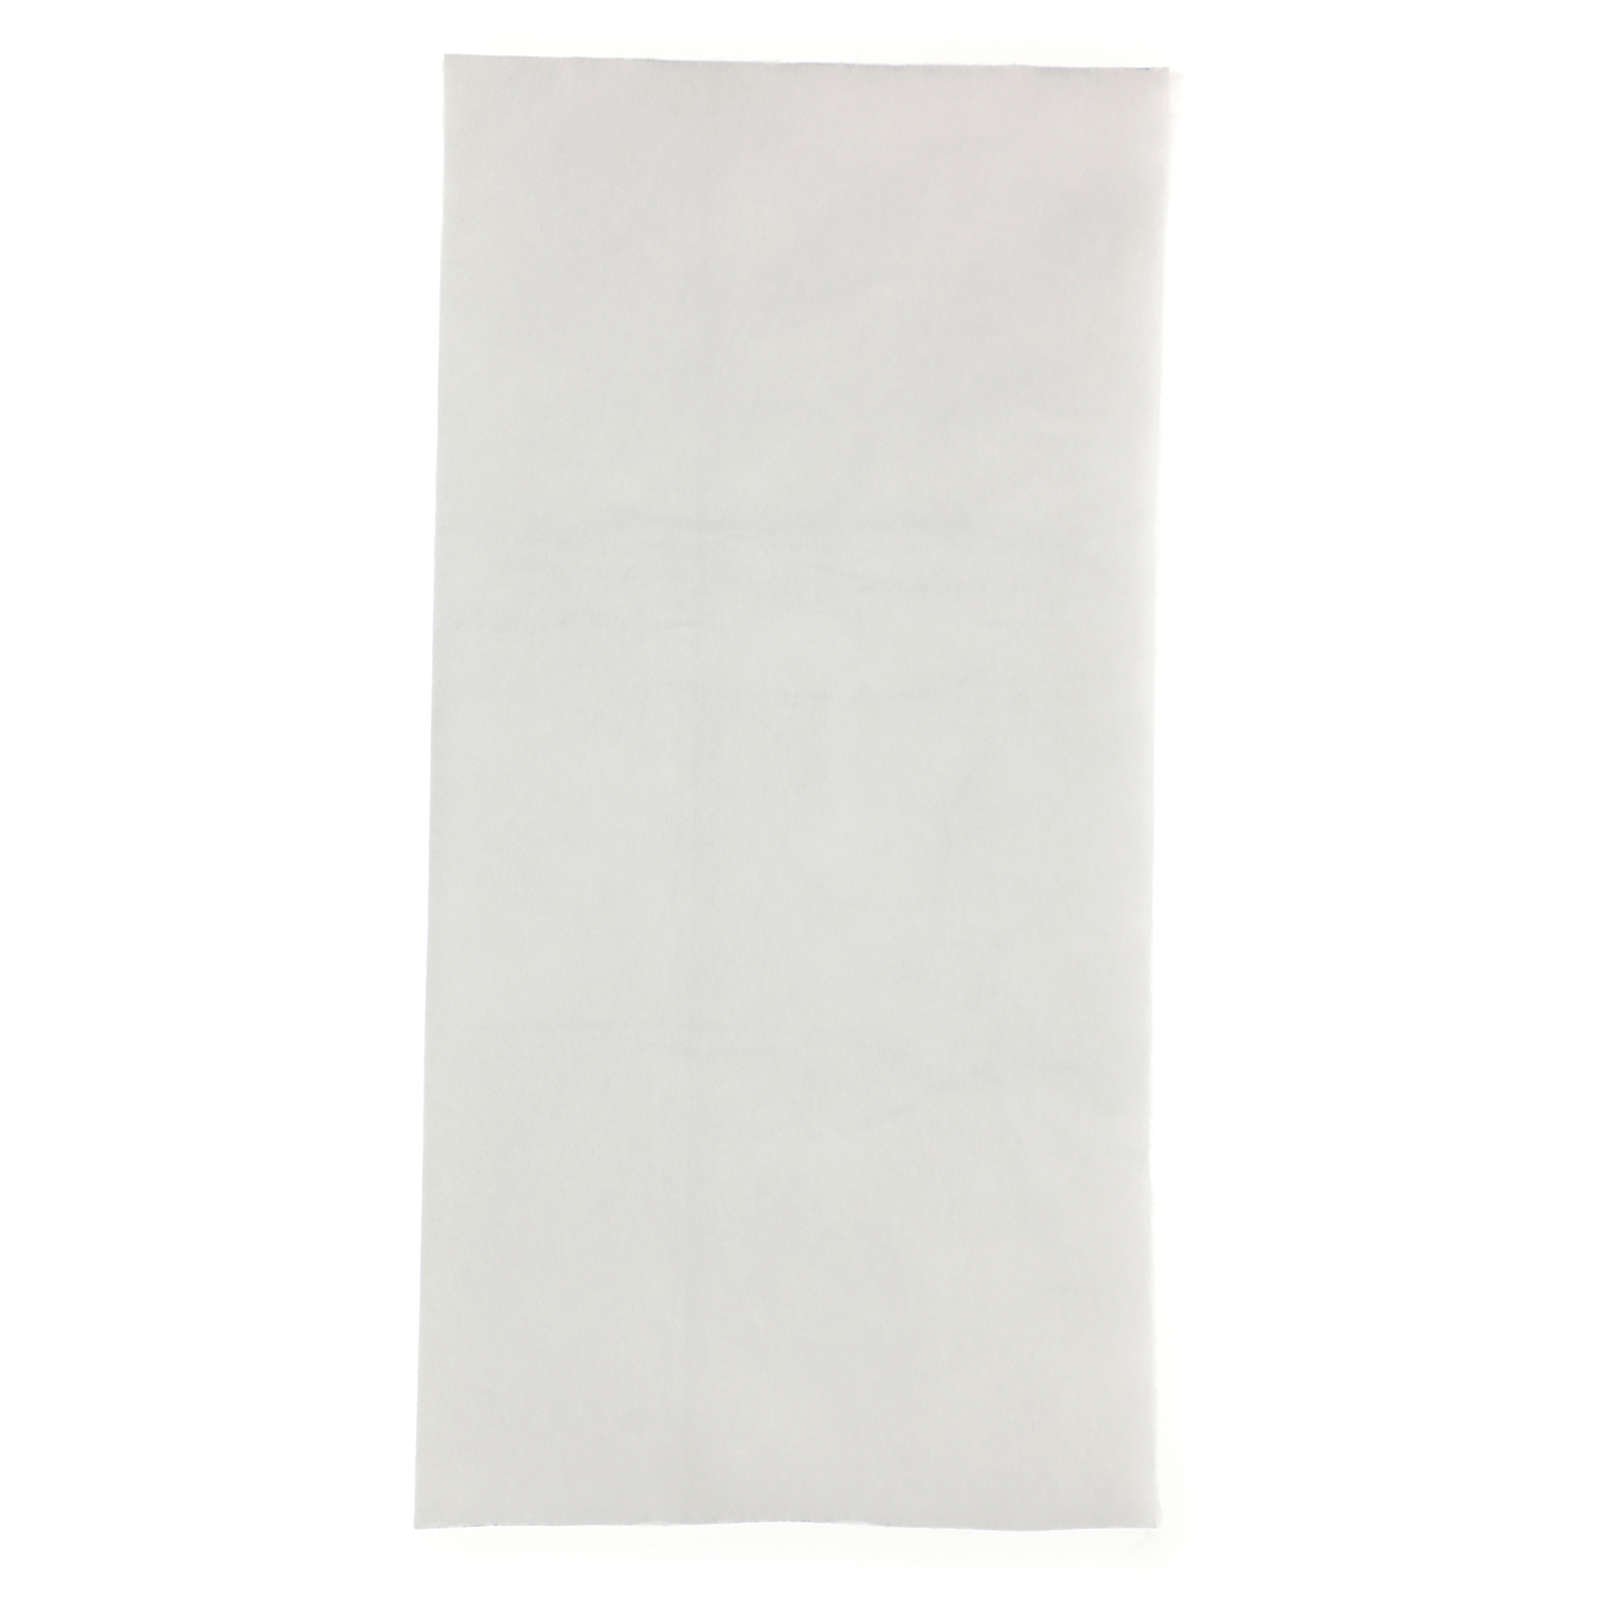 Mouldable snowy paper for Nativity scene 60x30 cm 4